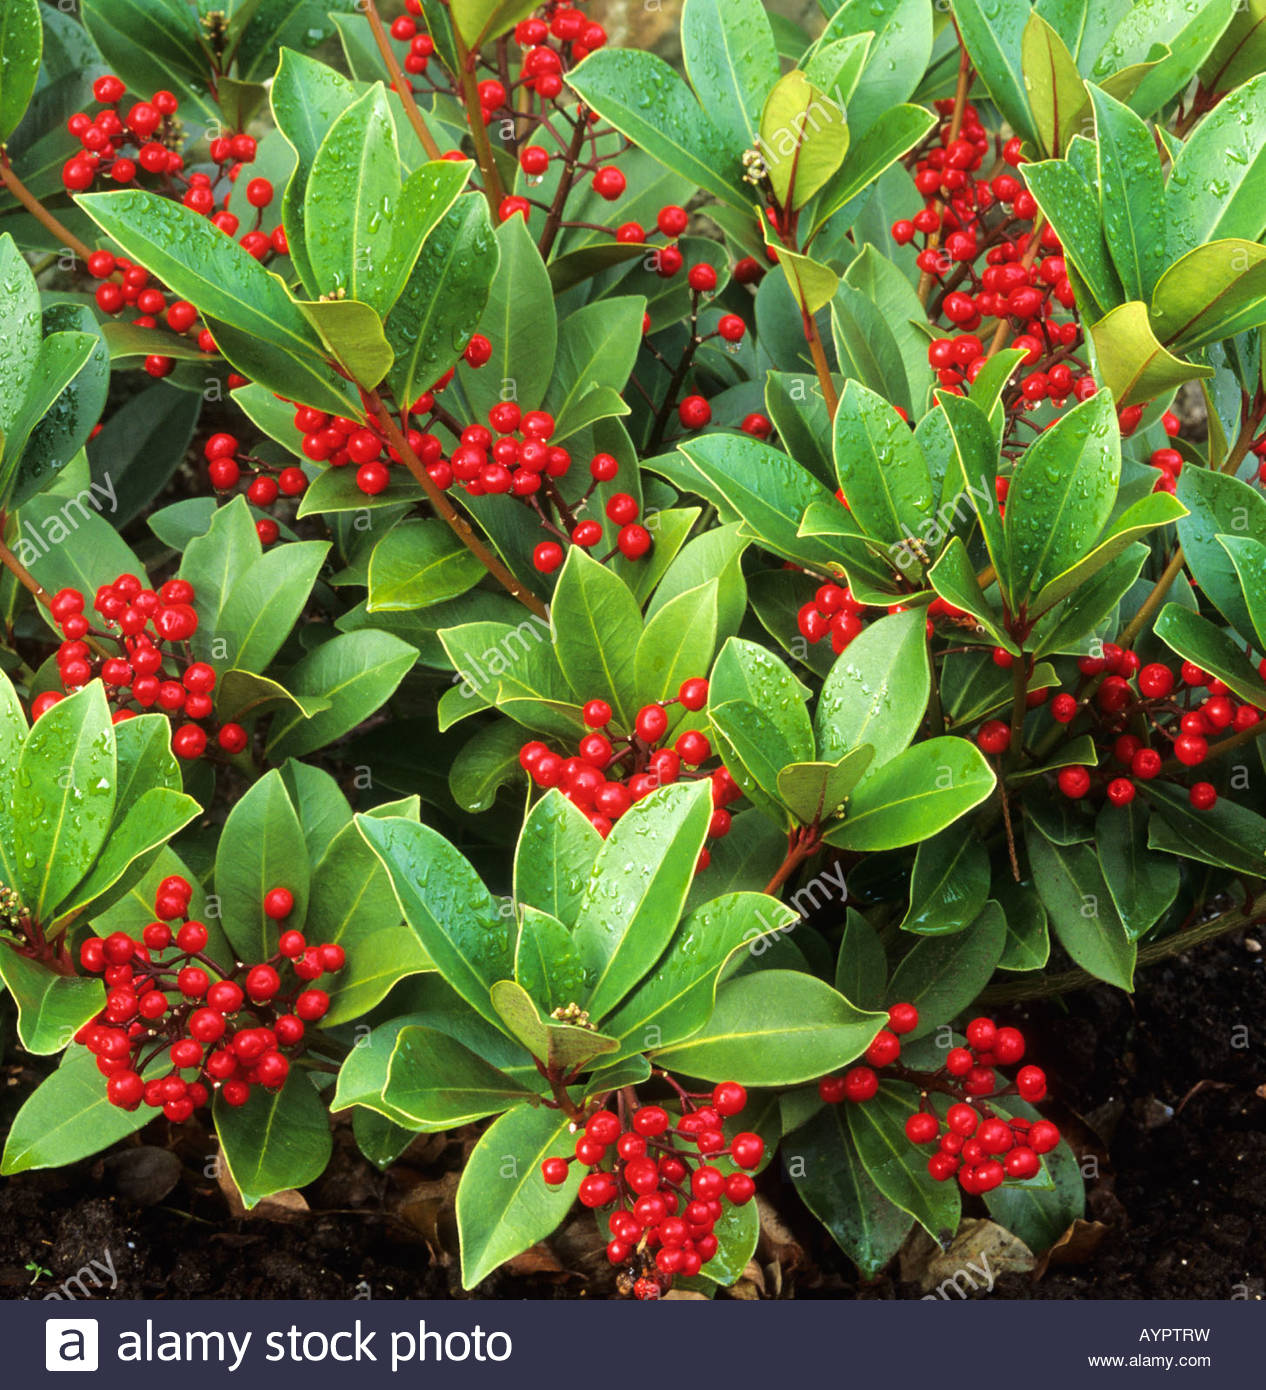 skimmia japonica subsp reevesiana stock photo royalty. Black Bedroom Furniture Sets. Home Design Ideas